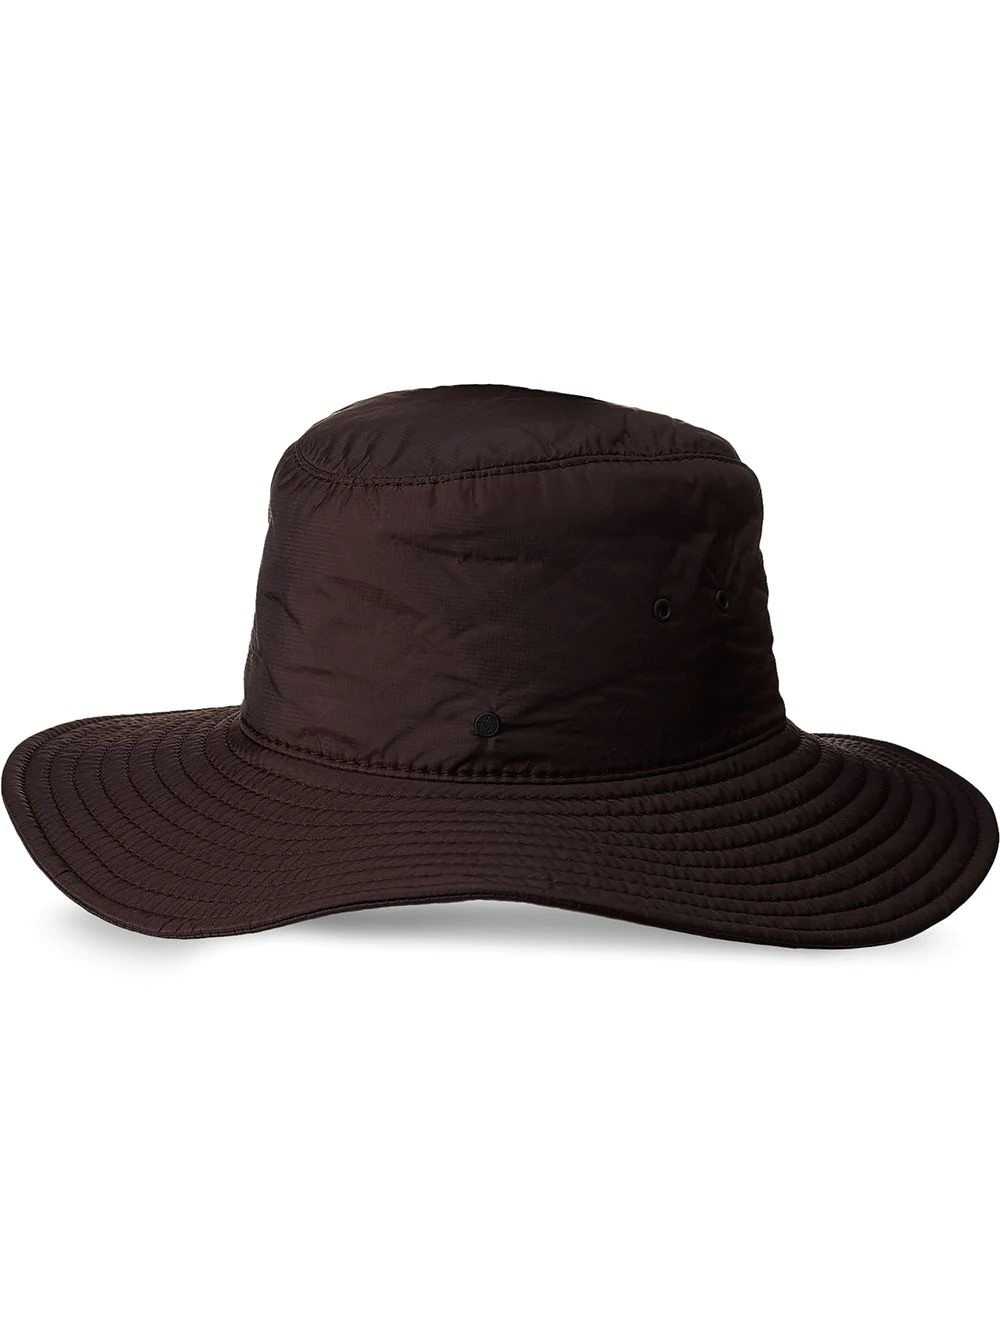 LAUREN HAT2 20PF THICK NYLON